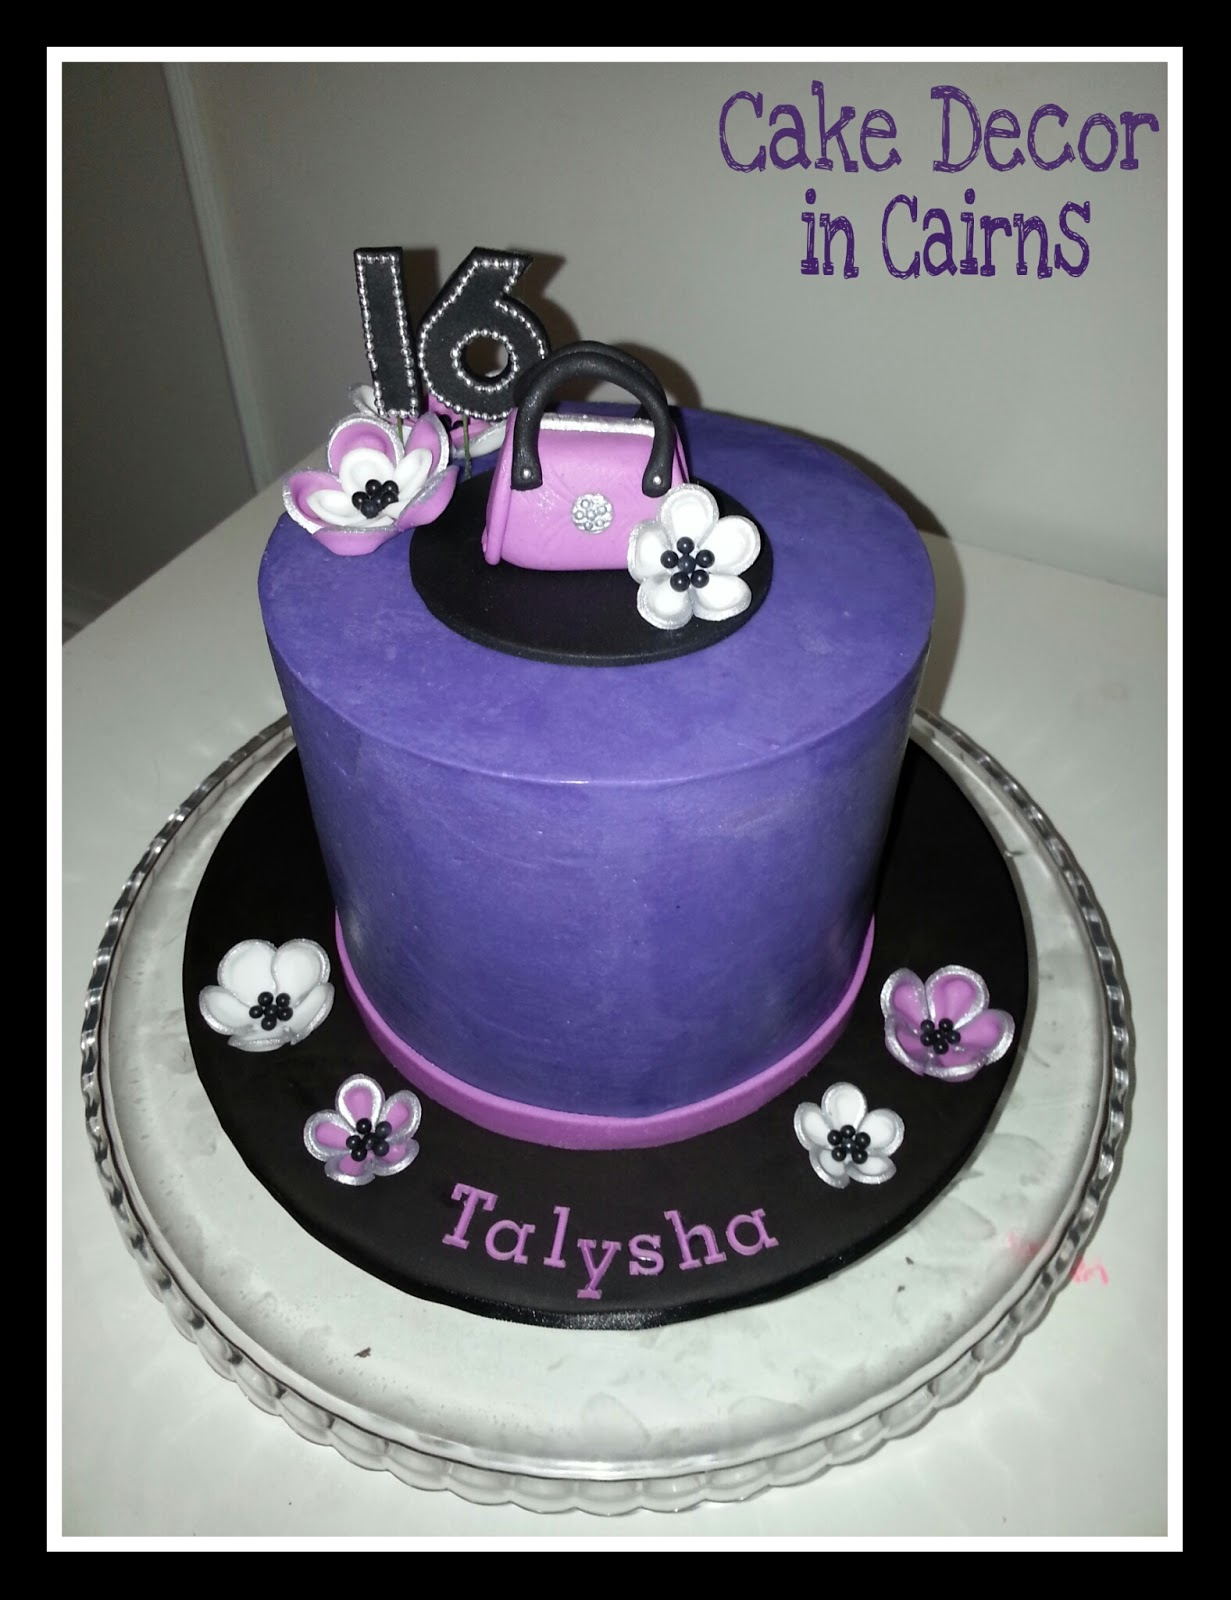 Coloured Ganache Recipe. How to Color ganache instructions. Purple Ganache Cake Cake Decor in Cairns.